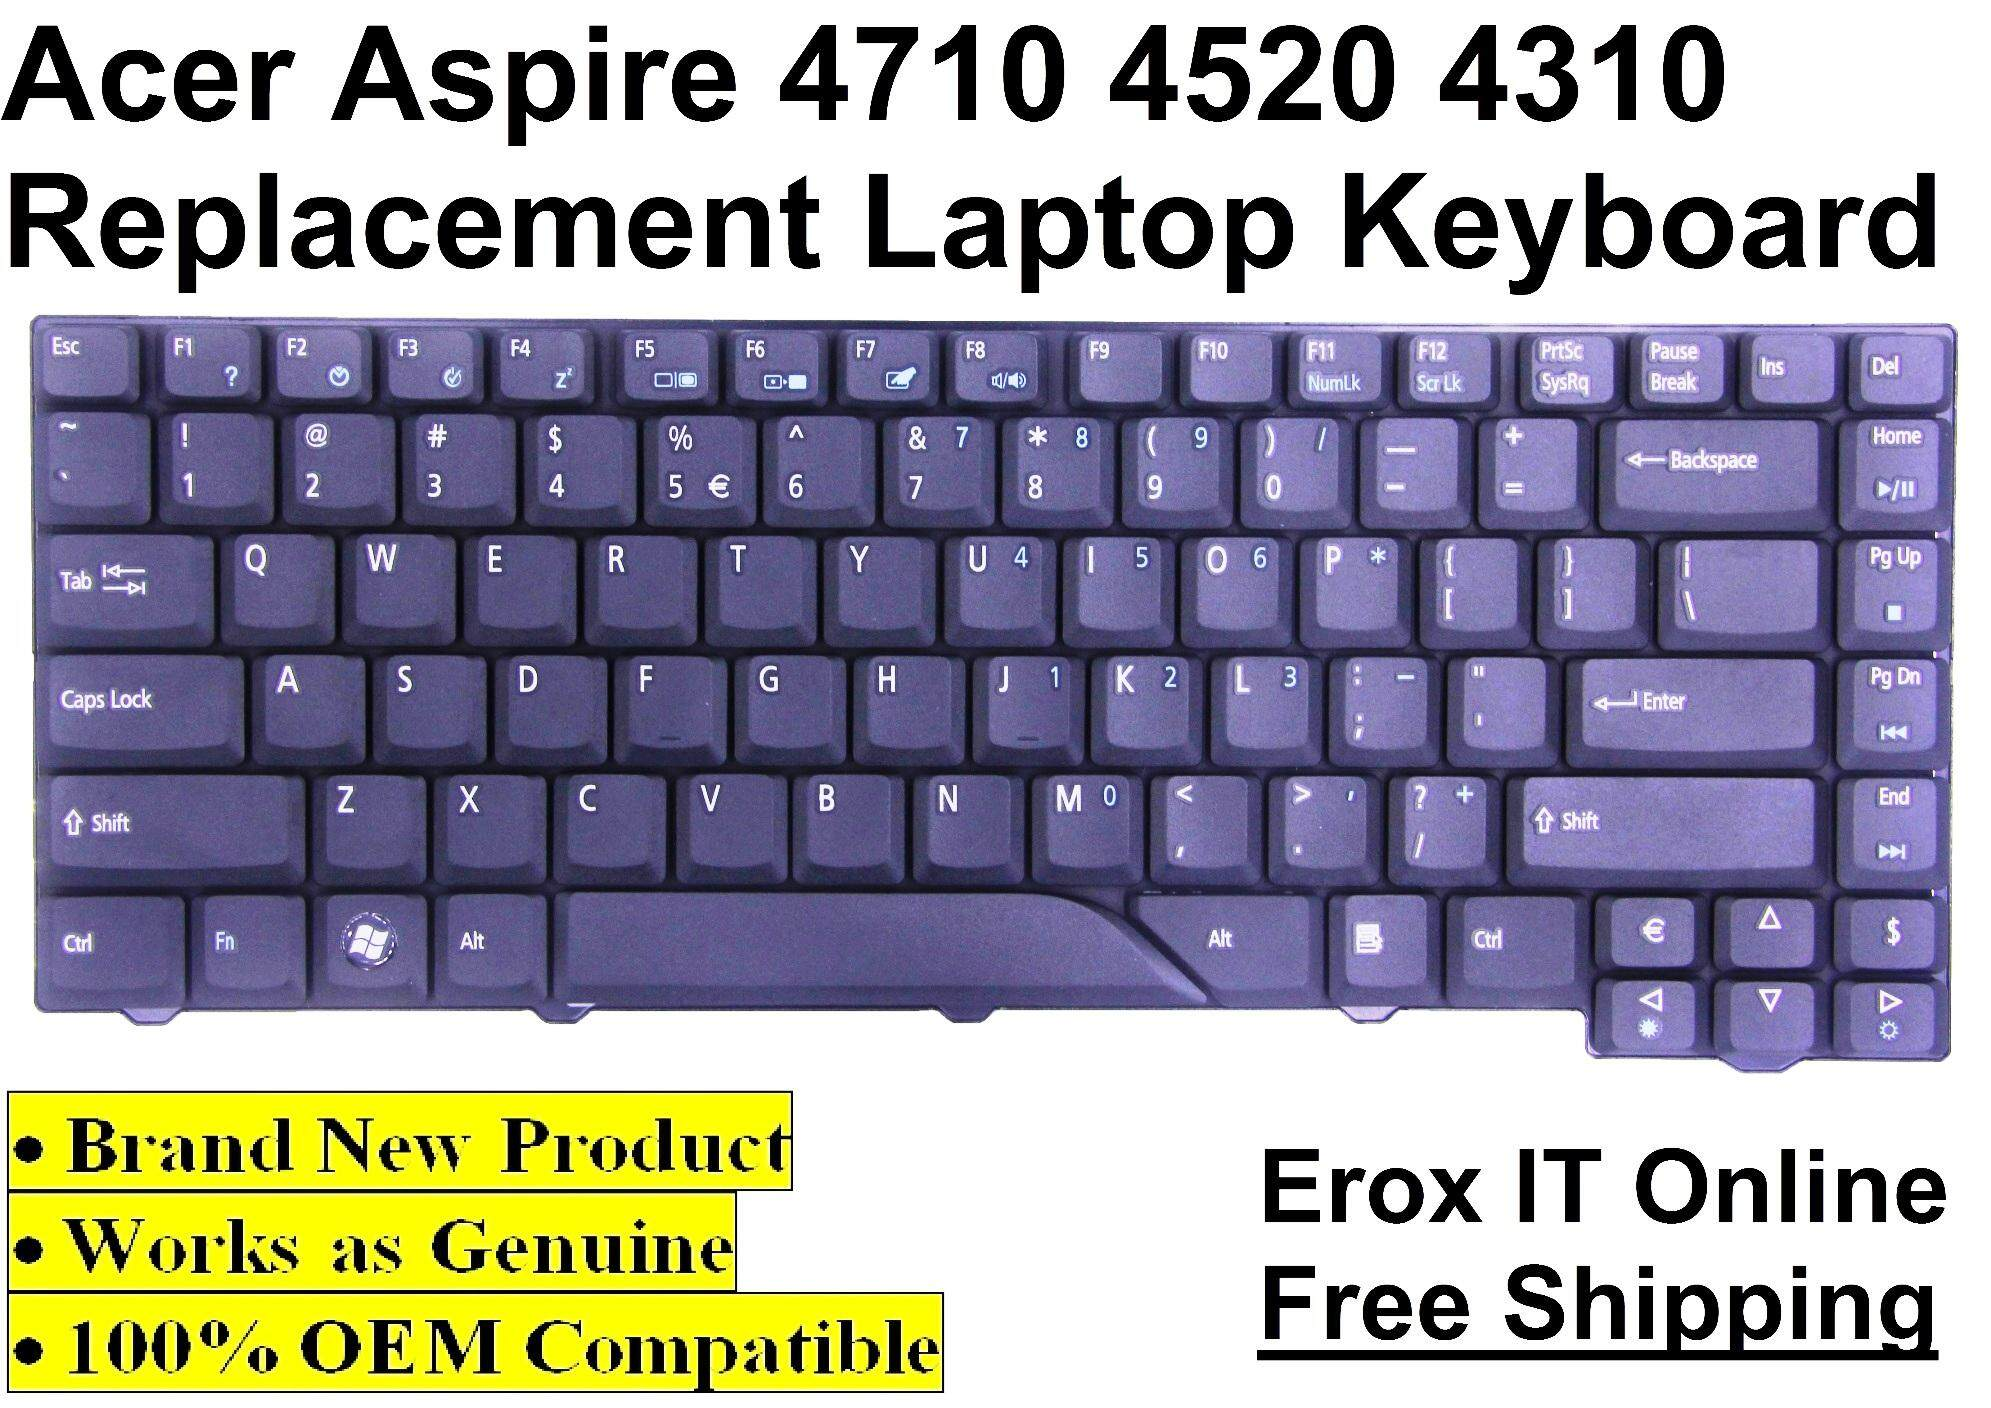 Replacement/Compatible Laptop Keyboard for Acer Aspire 4310 series /Acer 4710 OEM Replacement Keyboard Malaysia